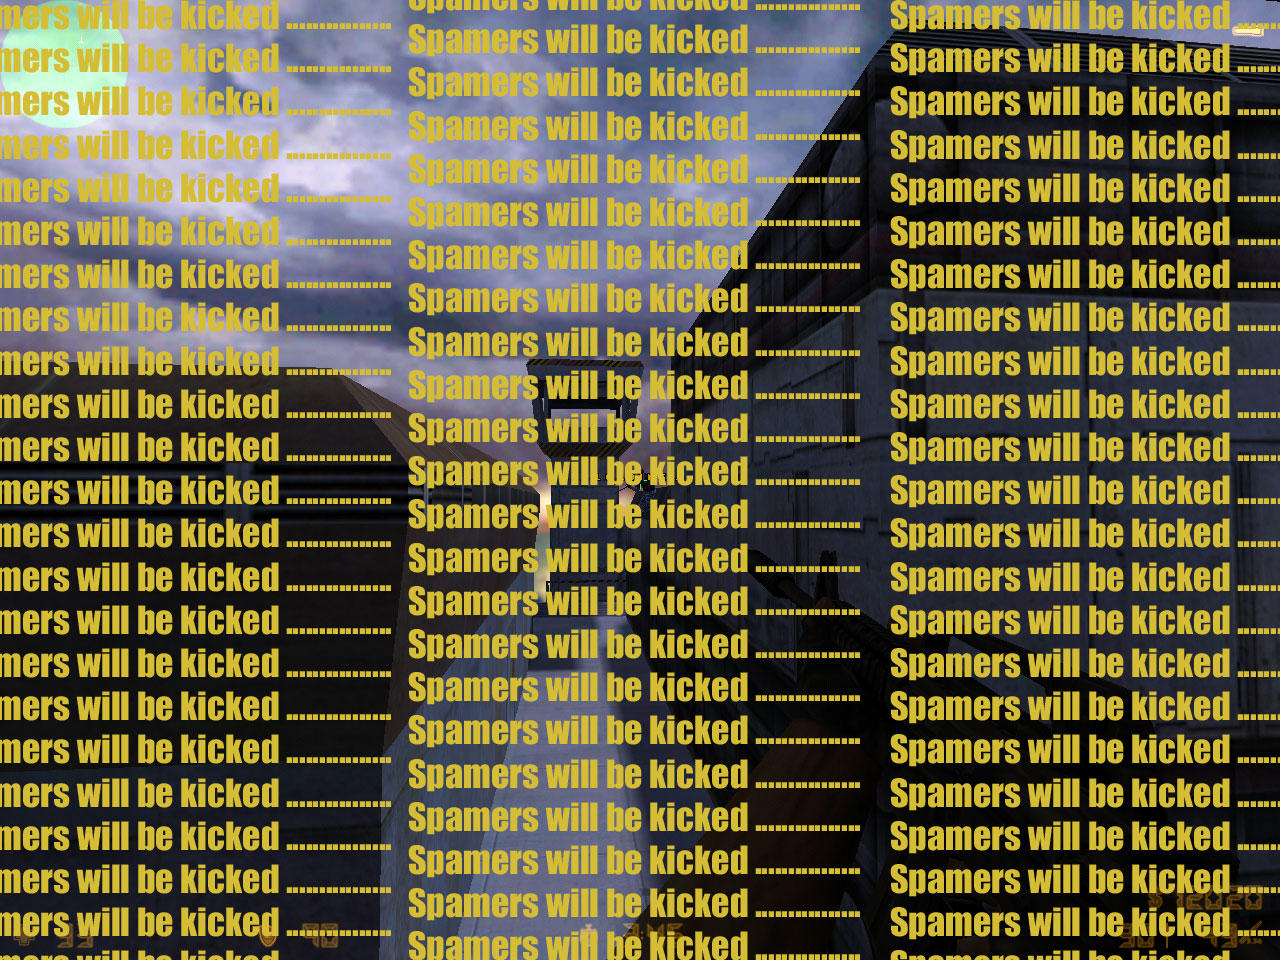 Spamers will be kicked by ender-pontius